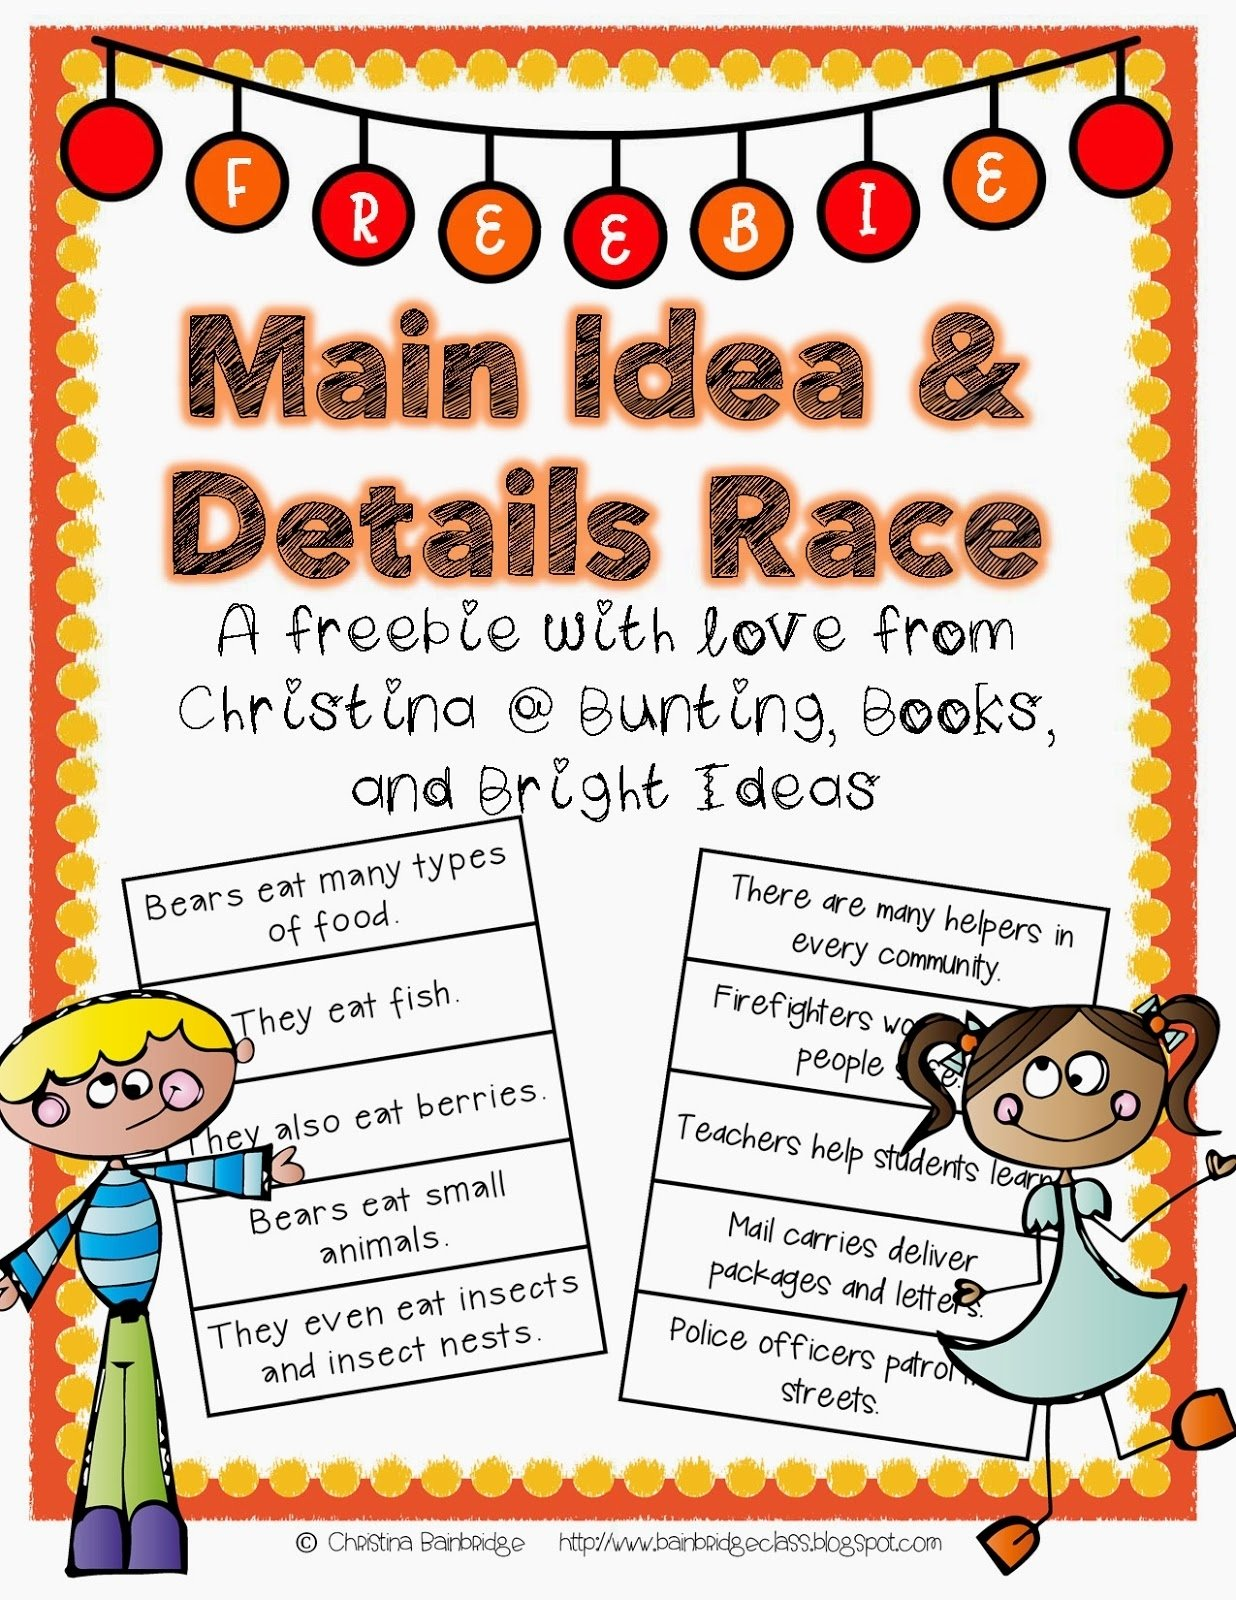 10 Stunning Main Idea And Detail Games bunting books and bright ideas main idea and details freebie 2